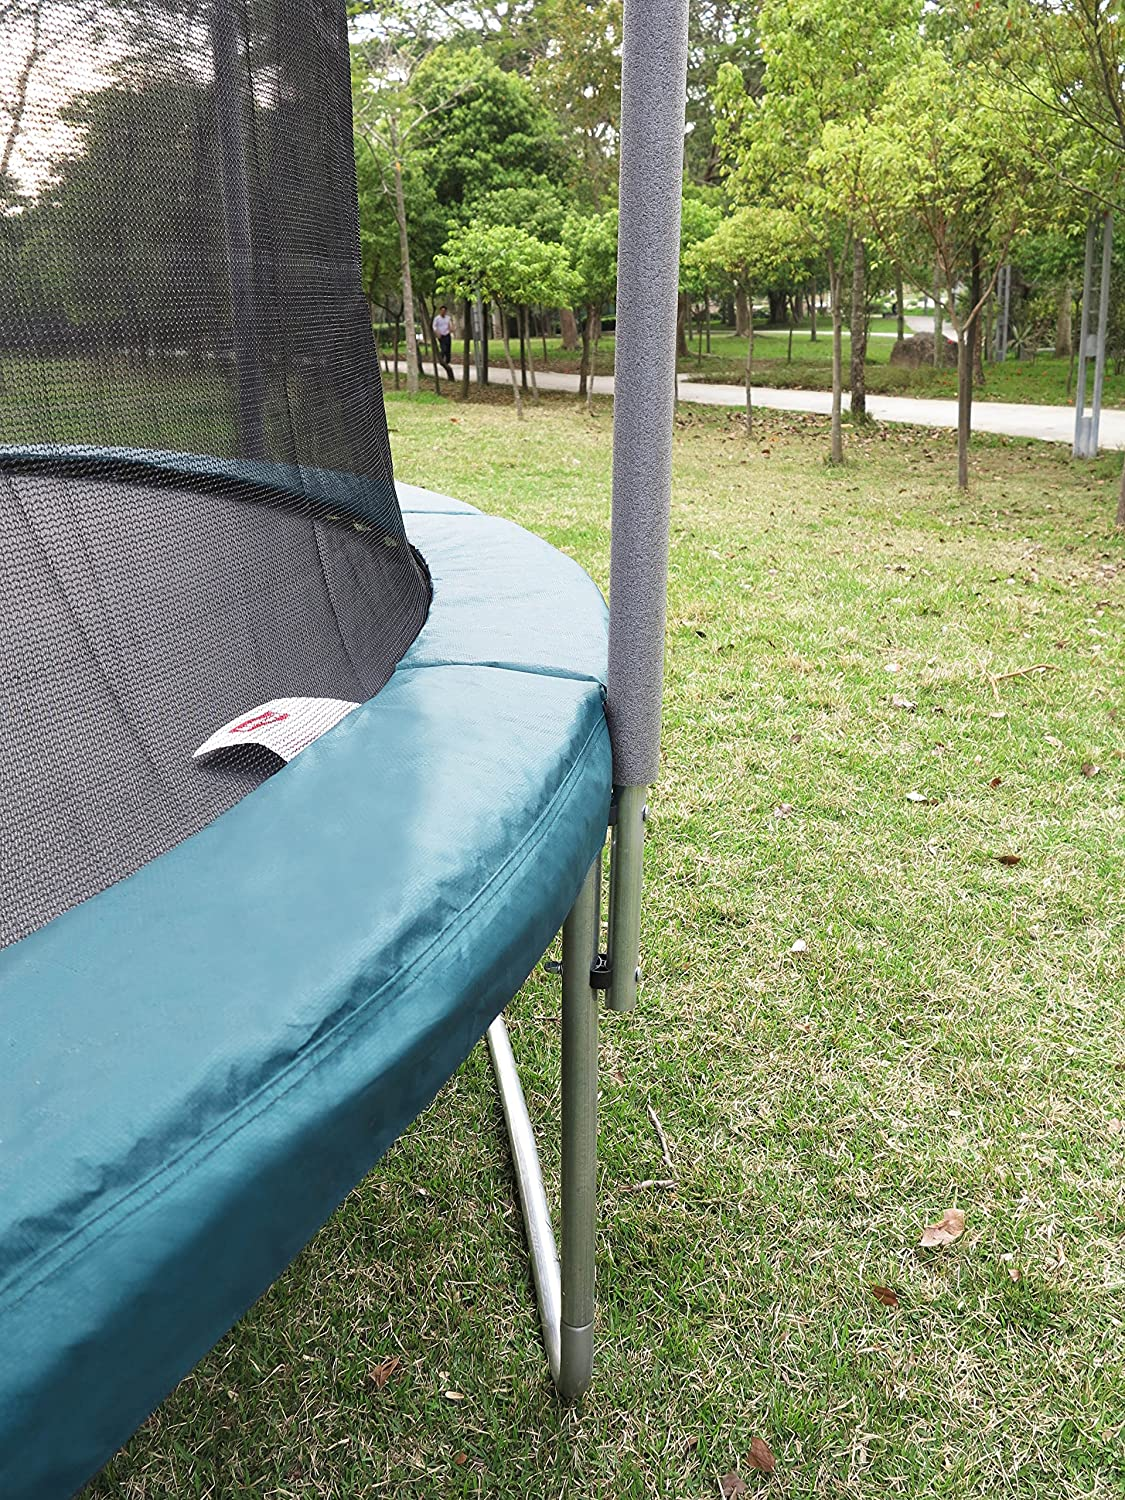 This is Sportspower 15ft Trampoline And Enclosure Combination. It is smaller than with rectangular or square trampolines which is why the round form is one of the most prominent one for families